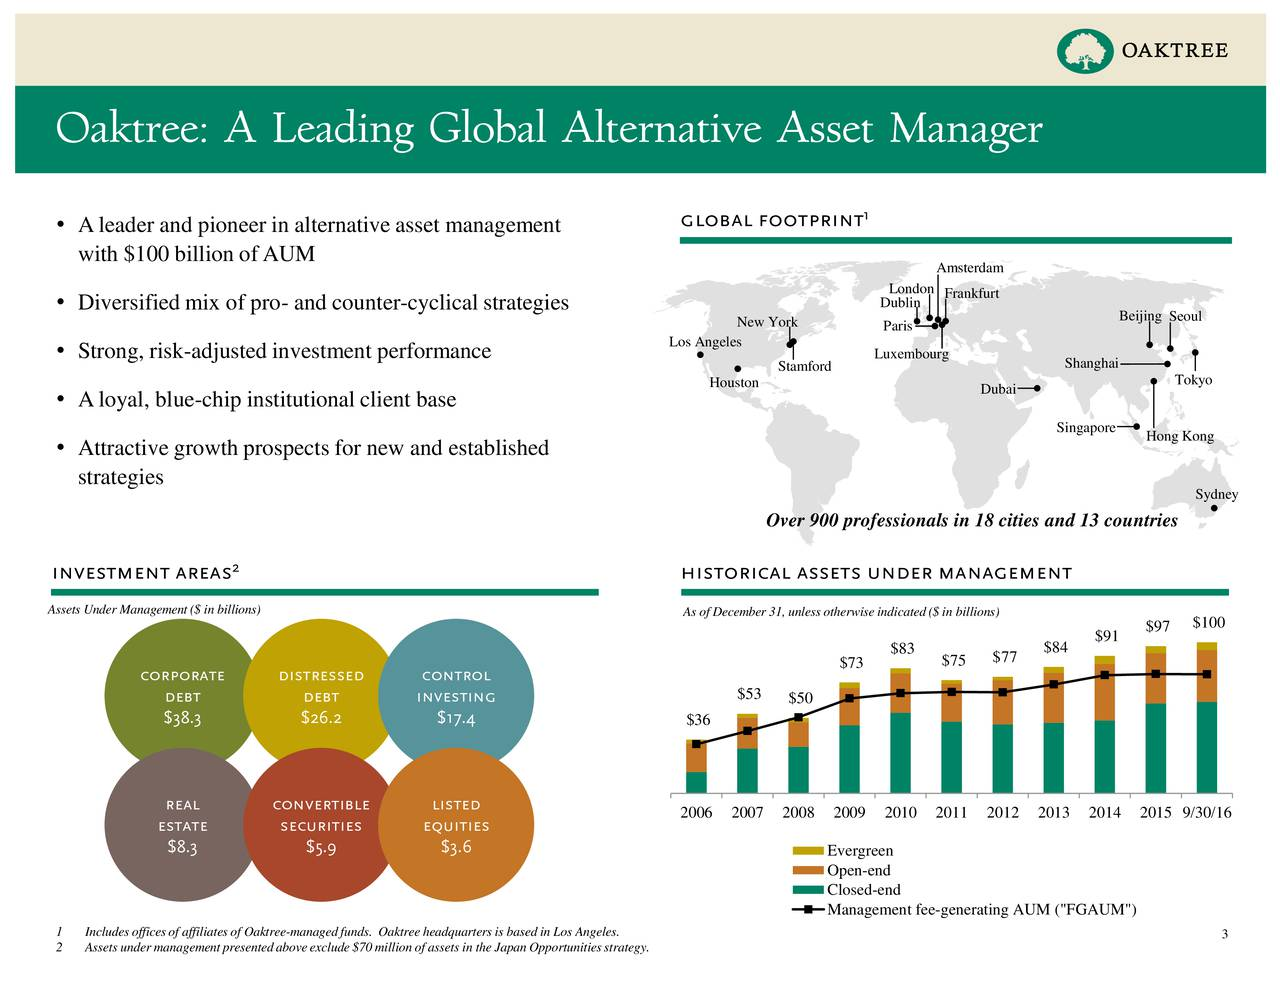 """global footprint 1 Aleader and pioneer in alternative asset management with $100 billion ofAUM Amsterdam London Frankfurt Diversified mix of pro- and counter-cyclical strategies Dublin New York Paris Beijing Seoul Los Angeles Strong, risk-adjusted investment performance Luxembourg Stamford Shanghai Houston Dubai Tokyo Aloyal, blue-chip institutional client base Singapore Hong Kong Attractive growth prospects for new and established strategies Sydney Over 900 professionals in 18 cities and 13 countries investment areas 2 historical assets under management Assets Under Management($ in billions) As of December 31, unless otherwiseindicated ($ in billions) $97 $100 $83 $84 $91 $73 $75 $77 corporate distressed control debt debt investing $53 $50 $38.3 $26.2 $17.4 $36 real convertible listed 2006 2007 2008 2009 2010 2011 2012 2013 2014 2015 9/30/16 estate securities equities $8.3 $5.9 $3.6 Evergreen Open-end Closed-end Management fee-generating AUM (""""FGAUM"""") 1 Includes officesof affiliates of Oaktree-managed funds. Oaktree headquarters is based in Los Angeles. 3 2 Assets under managementpresented aboveexclude$70 million of assets in the Japan Opportunitiesstrategy."""